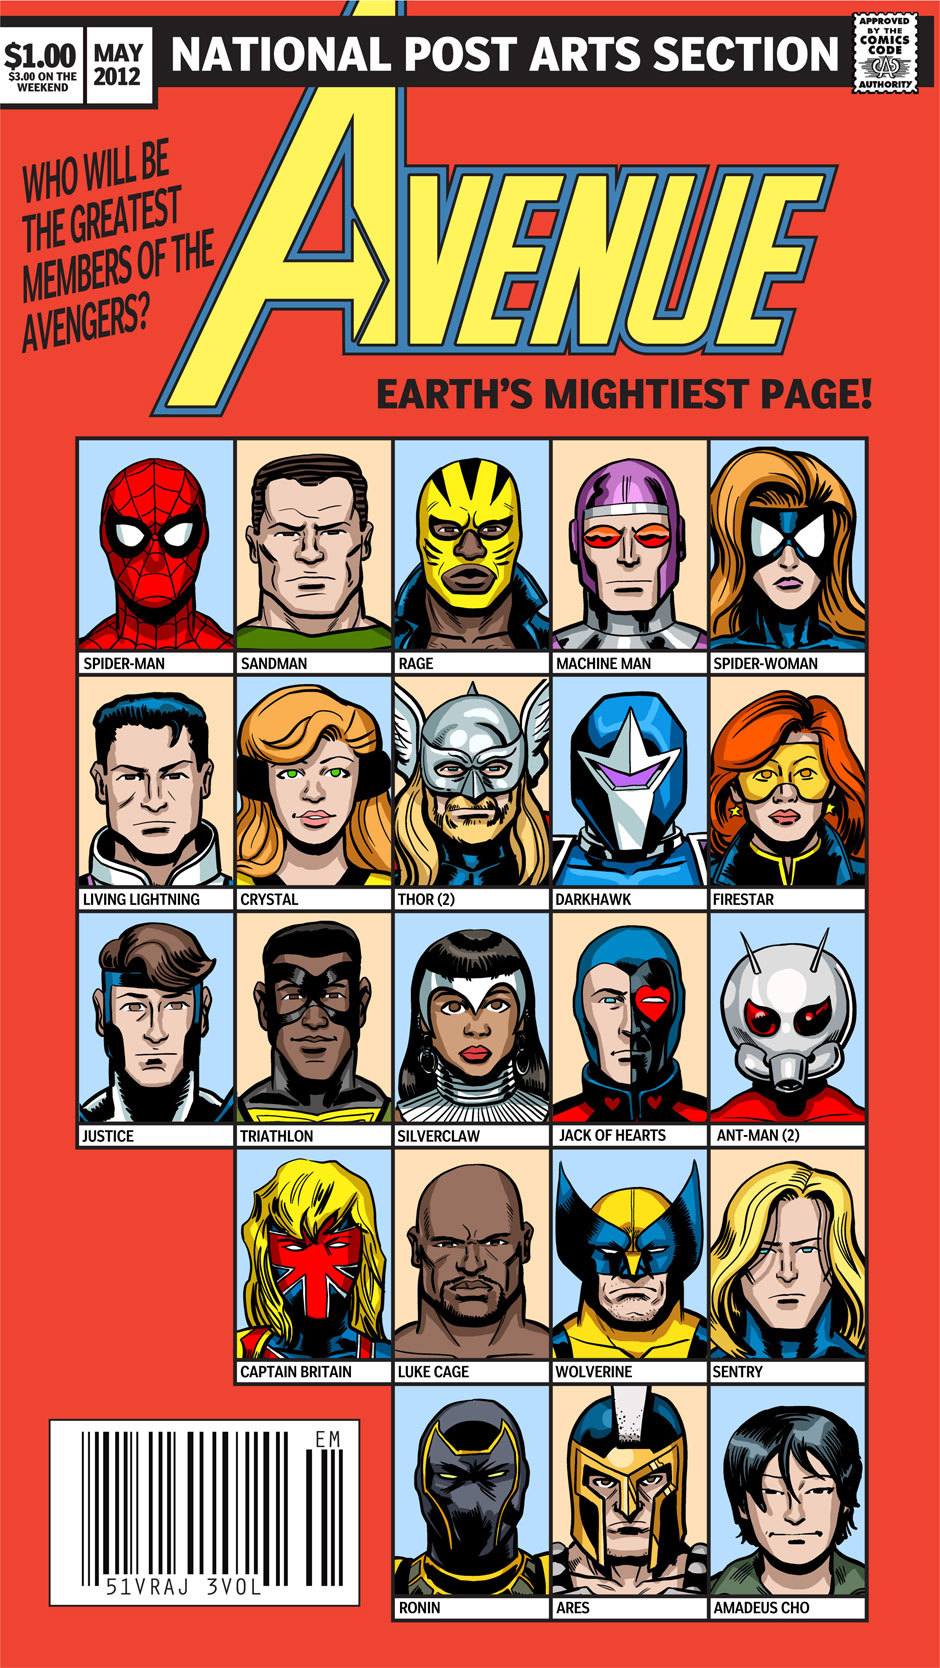 nparts:  It's Day 3 in our Avengers Assemble tournament! So far, Ms. Marvel and Iron Man have beaten out the competition to be voted your favourite Avengers. But who's your pick of the bunch today? Read all about each Avenger here, then vote for your favourite in the poll!